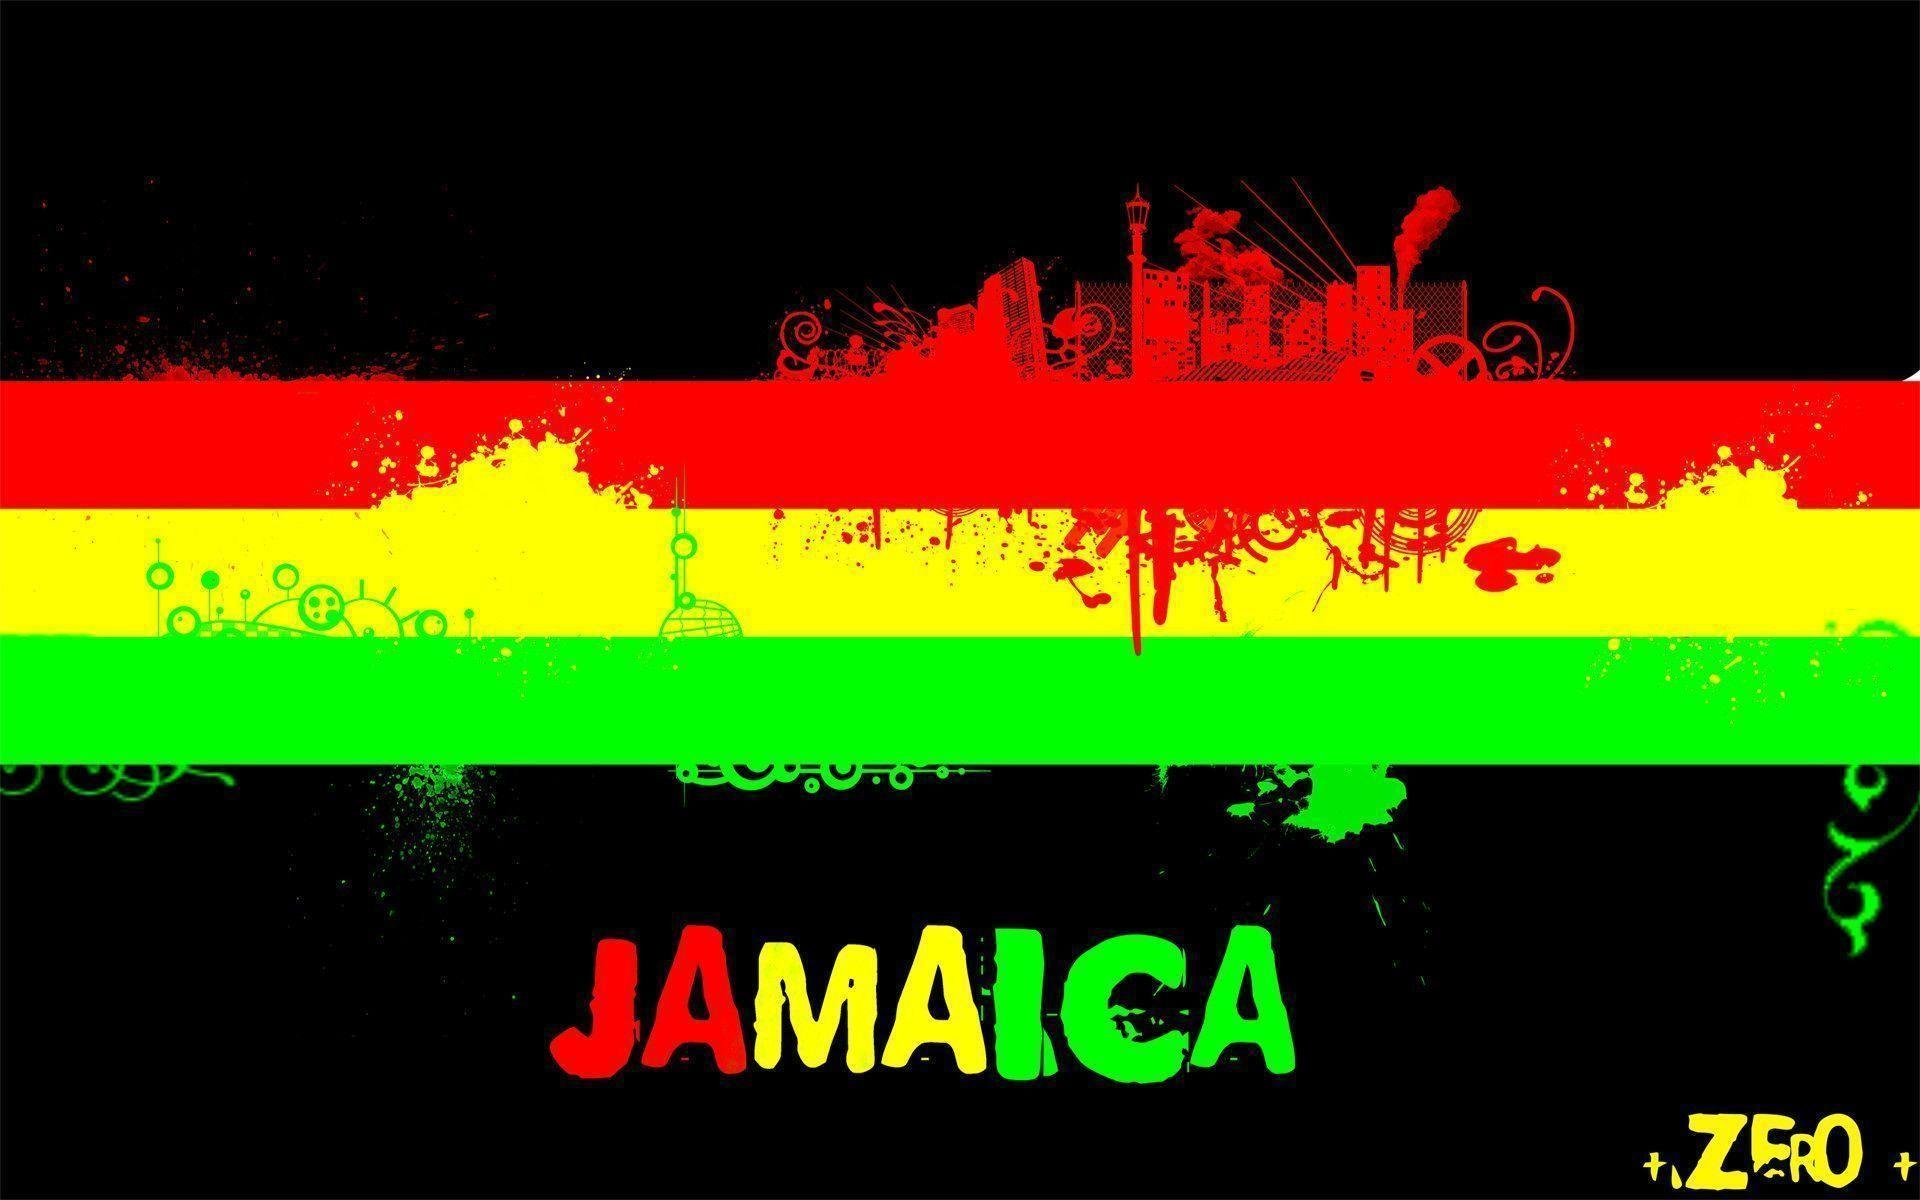 Jamaica Wallpapers Screensavers